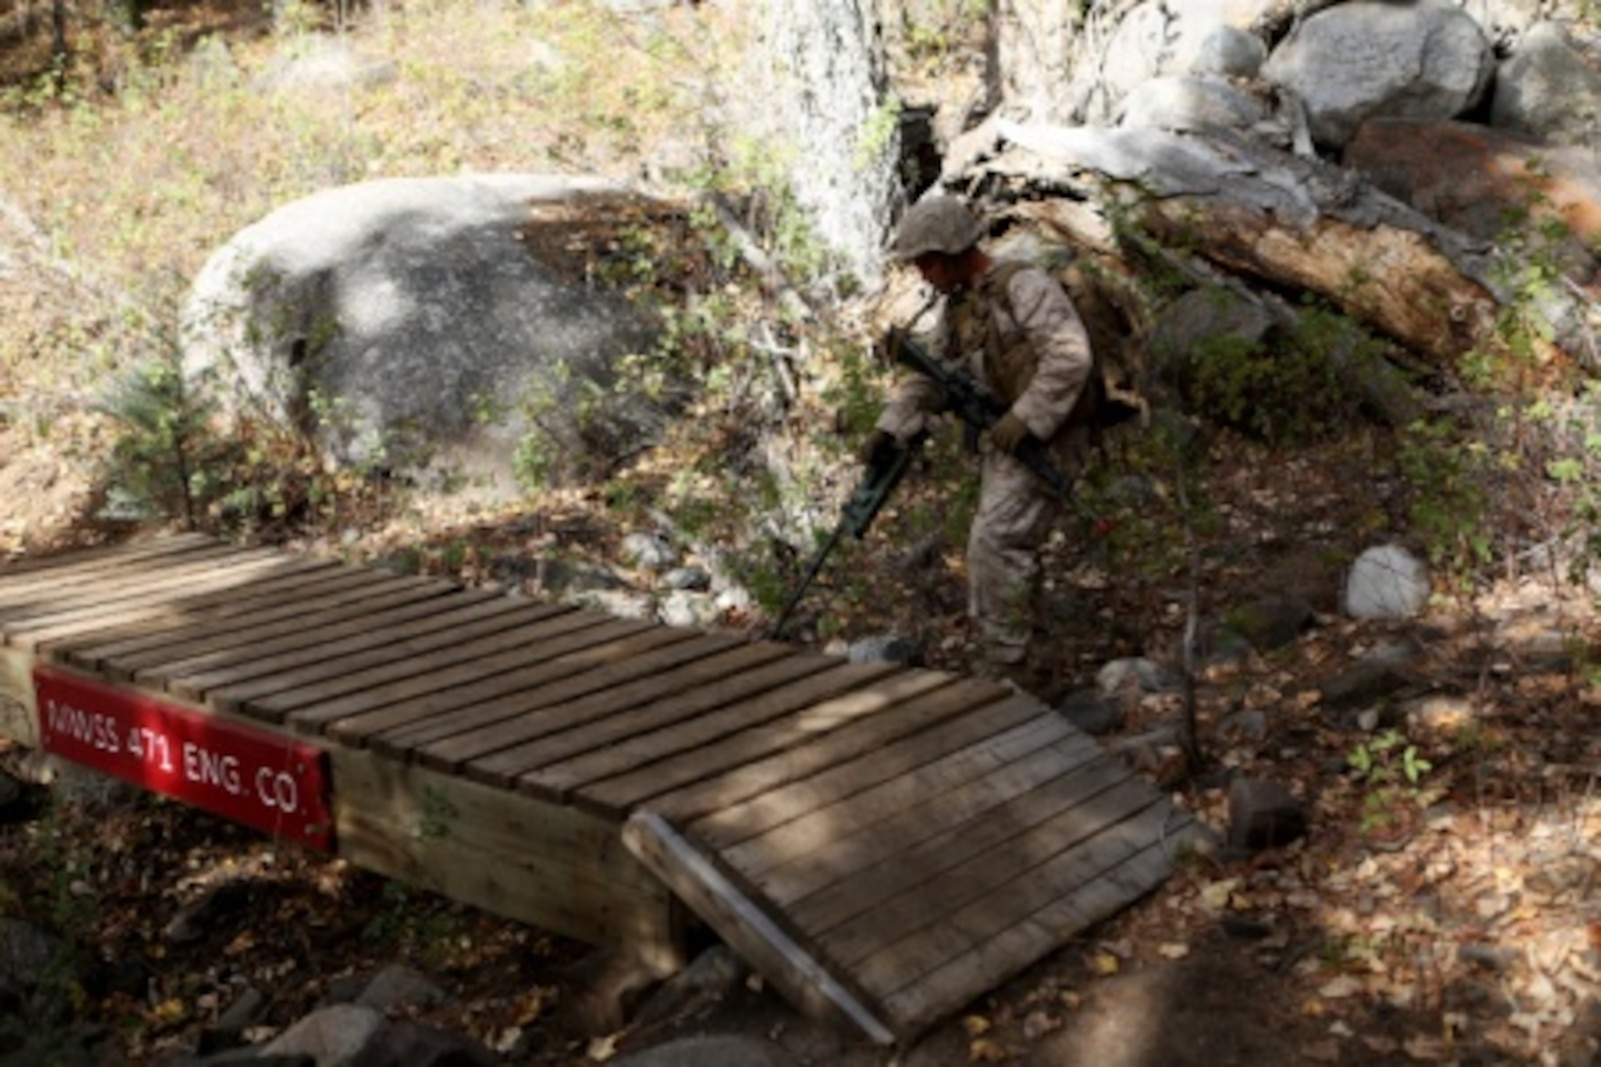 Cpl. Ben Hernandez, water purification specialist, Combat Logistics Battalion 11, 1st Marine Logistics Group, checks for potential improvised explosive devices or threats conducted by members of CLB-11's engineer platoon during Mountain Exercise 6-15 at Marine Corps Mountain Warfare Training Center, Bridgeport, Calif., Oct. 25, 2015. Engineer Platoon conducted two consecutive days of security patrols along a mountain trail to provide route reconnaissance, deter enemy forces and remove obstacles that would restrict friendly and civilian movement.